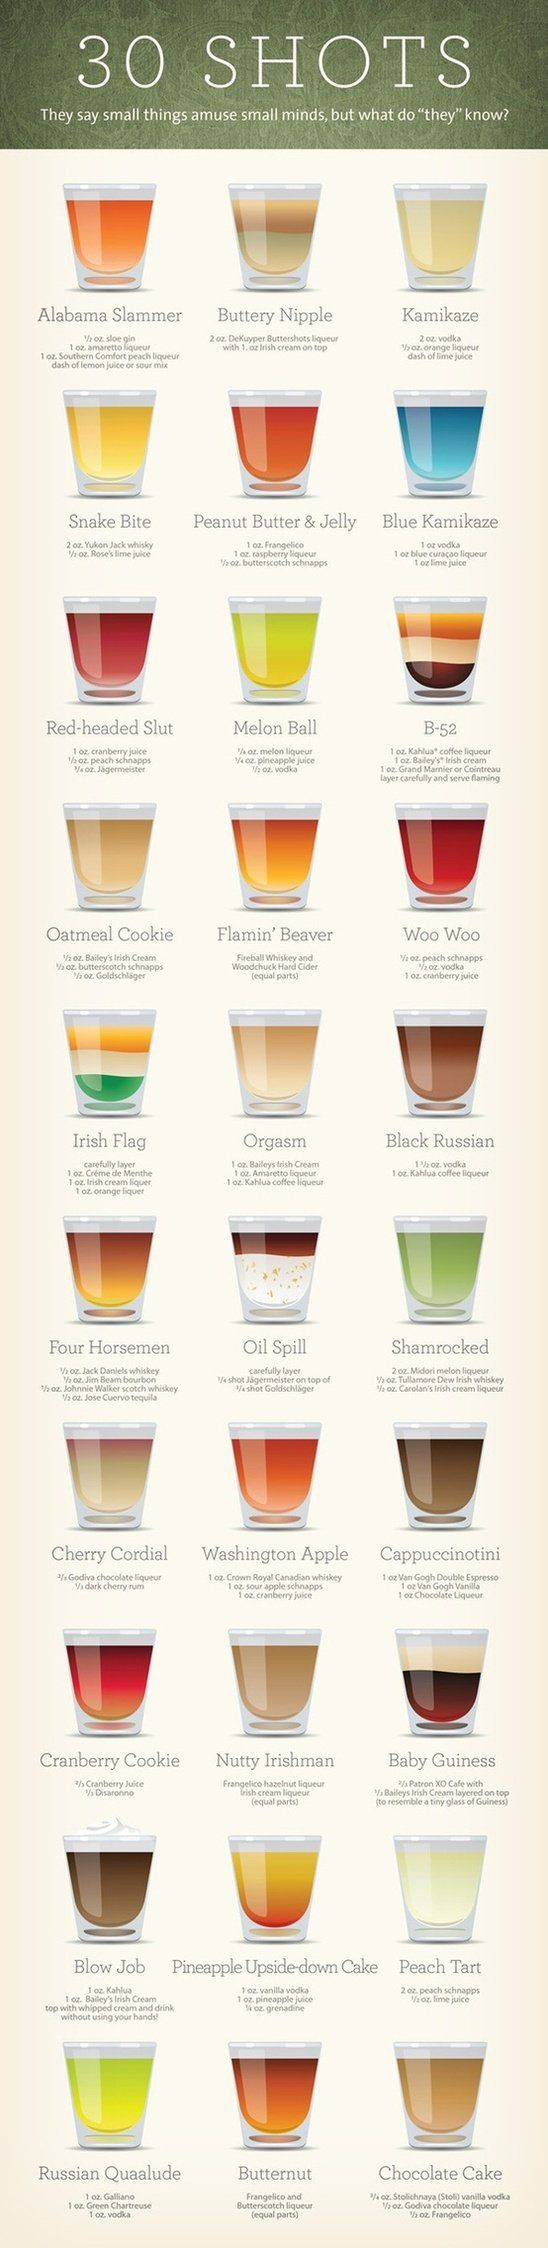 Super cool guide to shot #cocktails & #drinks! - @HauteFrugalista